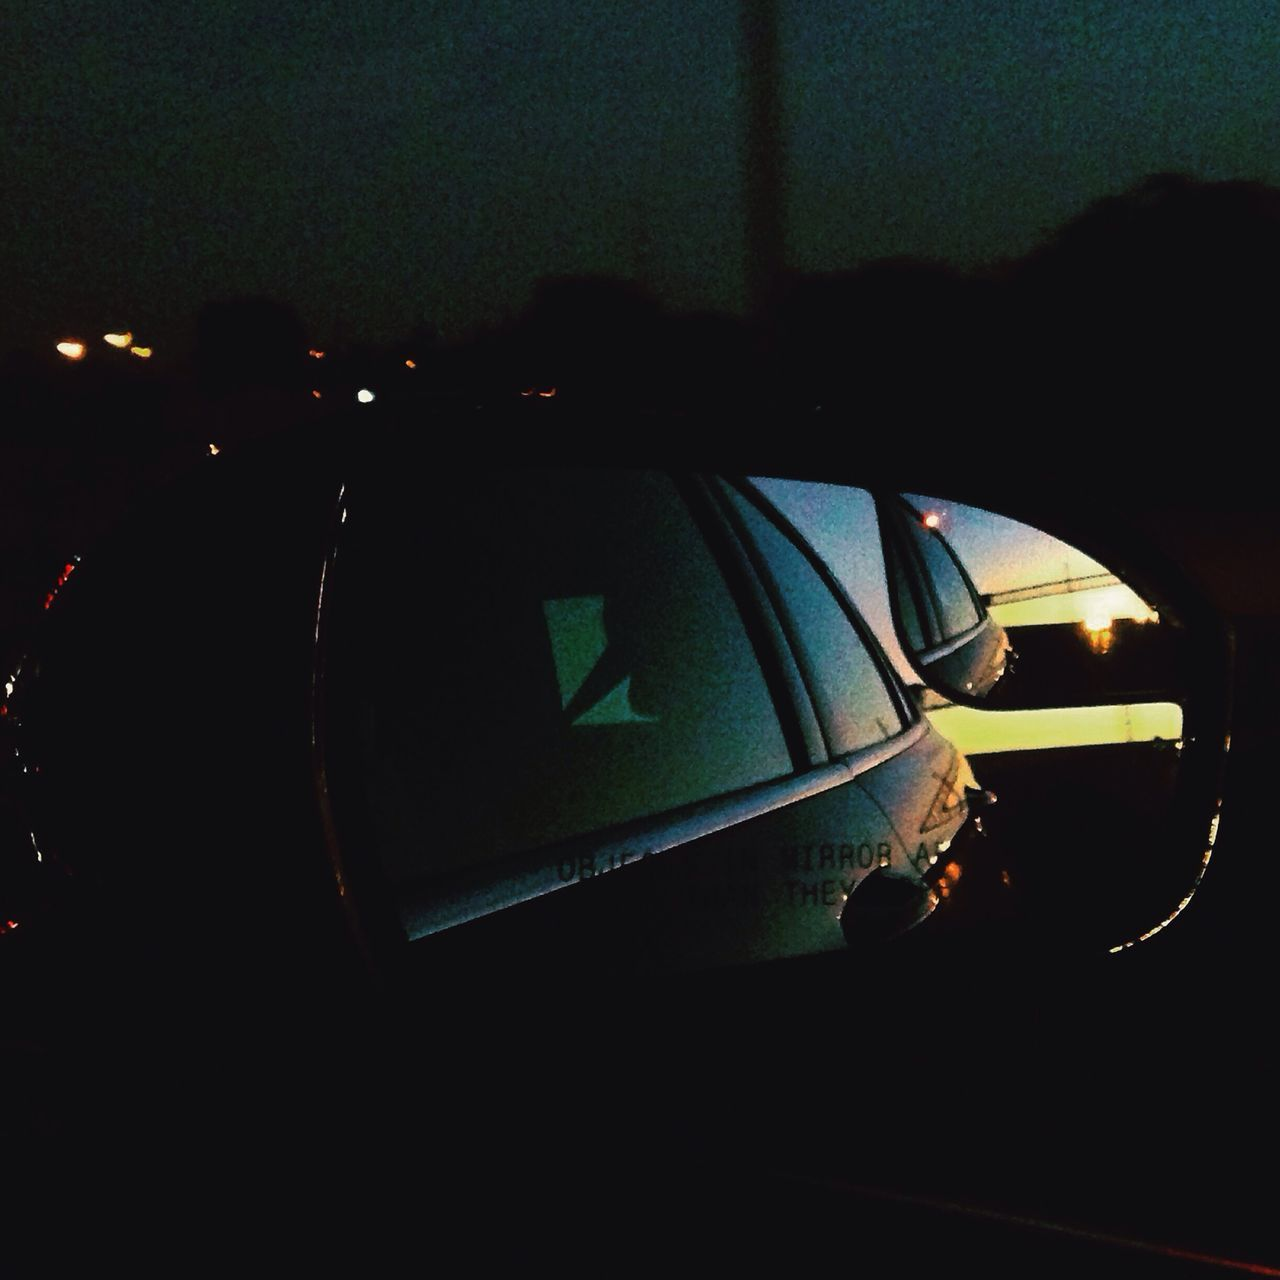 Mirror CarRides IPhoneography Adventures Reviewmirror Reflection Sunset